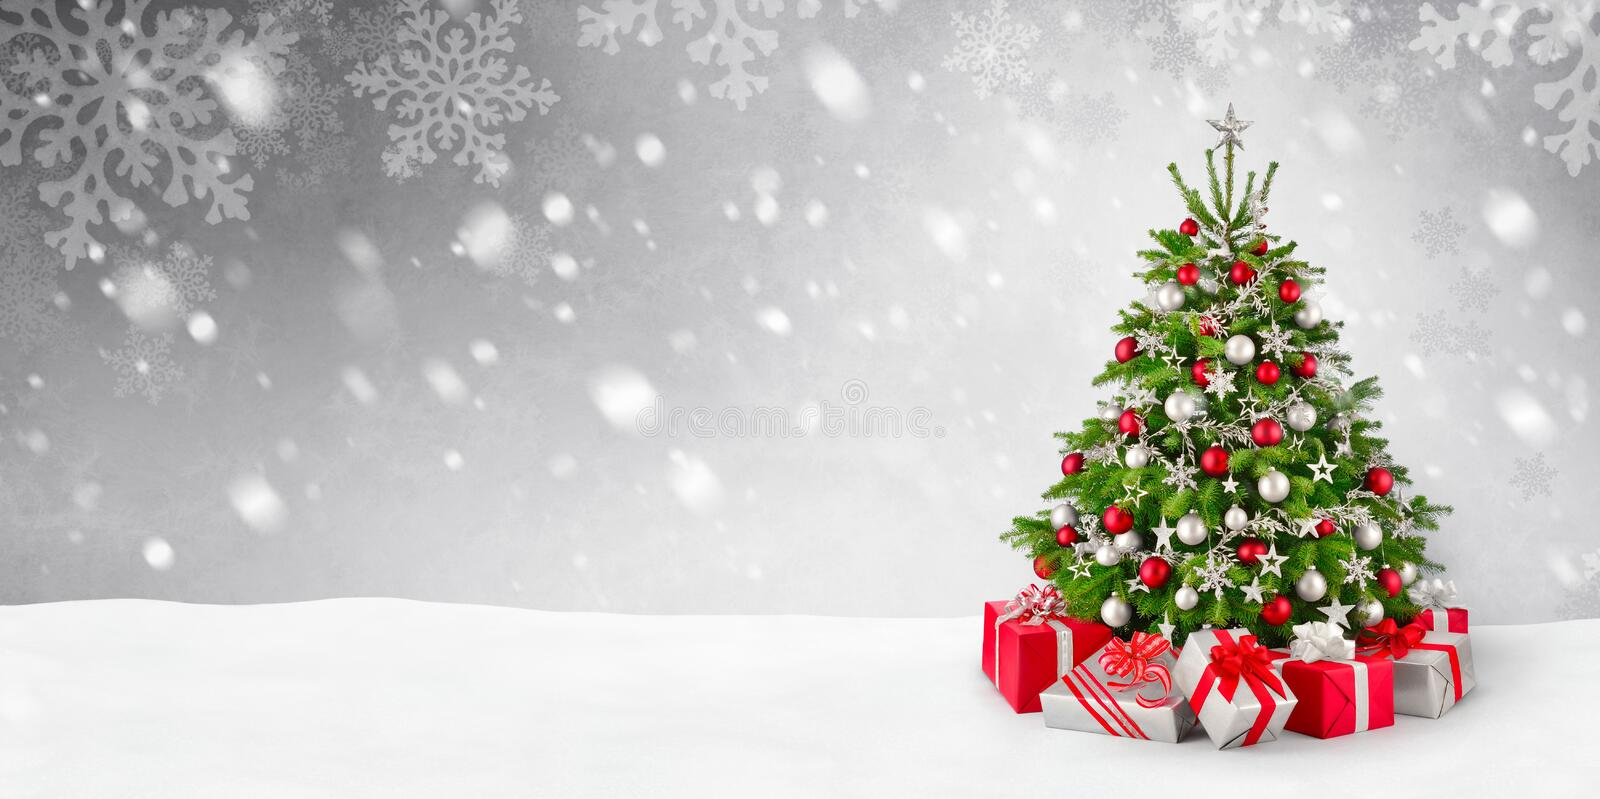 Christmas tree and snow background royalty free stock image